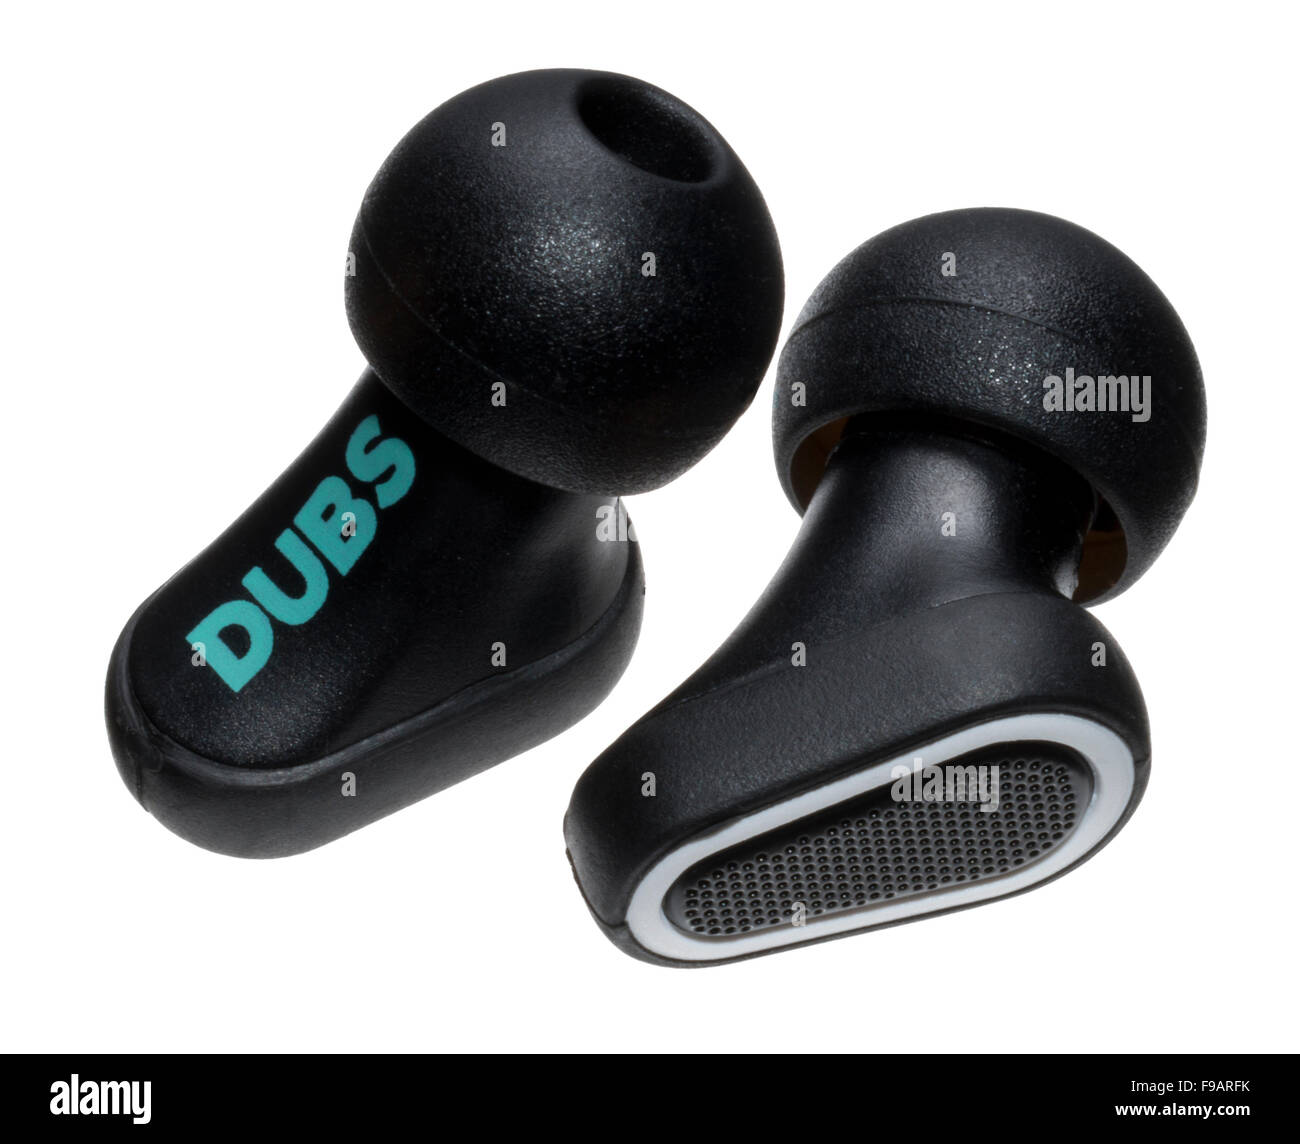 DUBS Acoustic Filters. Ear protection devices. Safety in loud environments. For concerts and clubs. Protect ears. - Stock Image